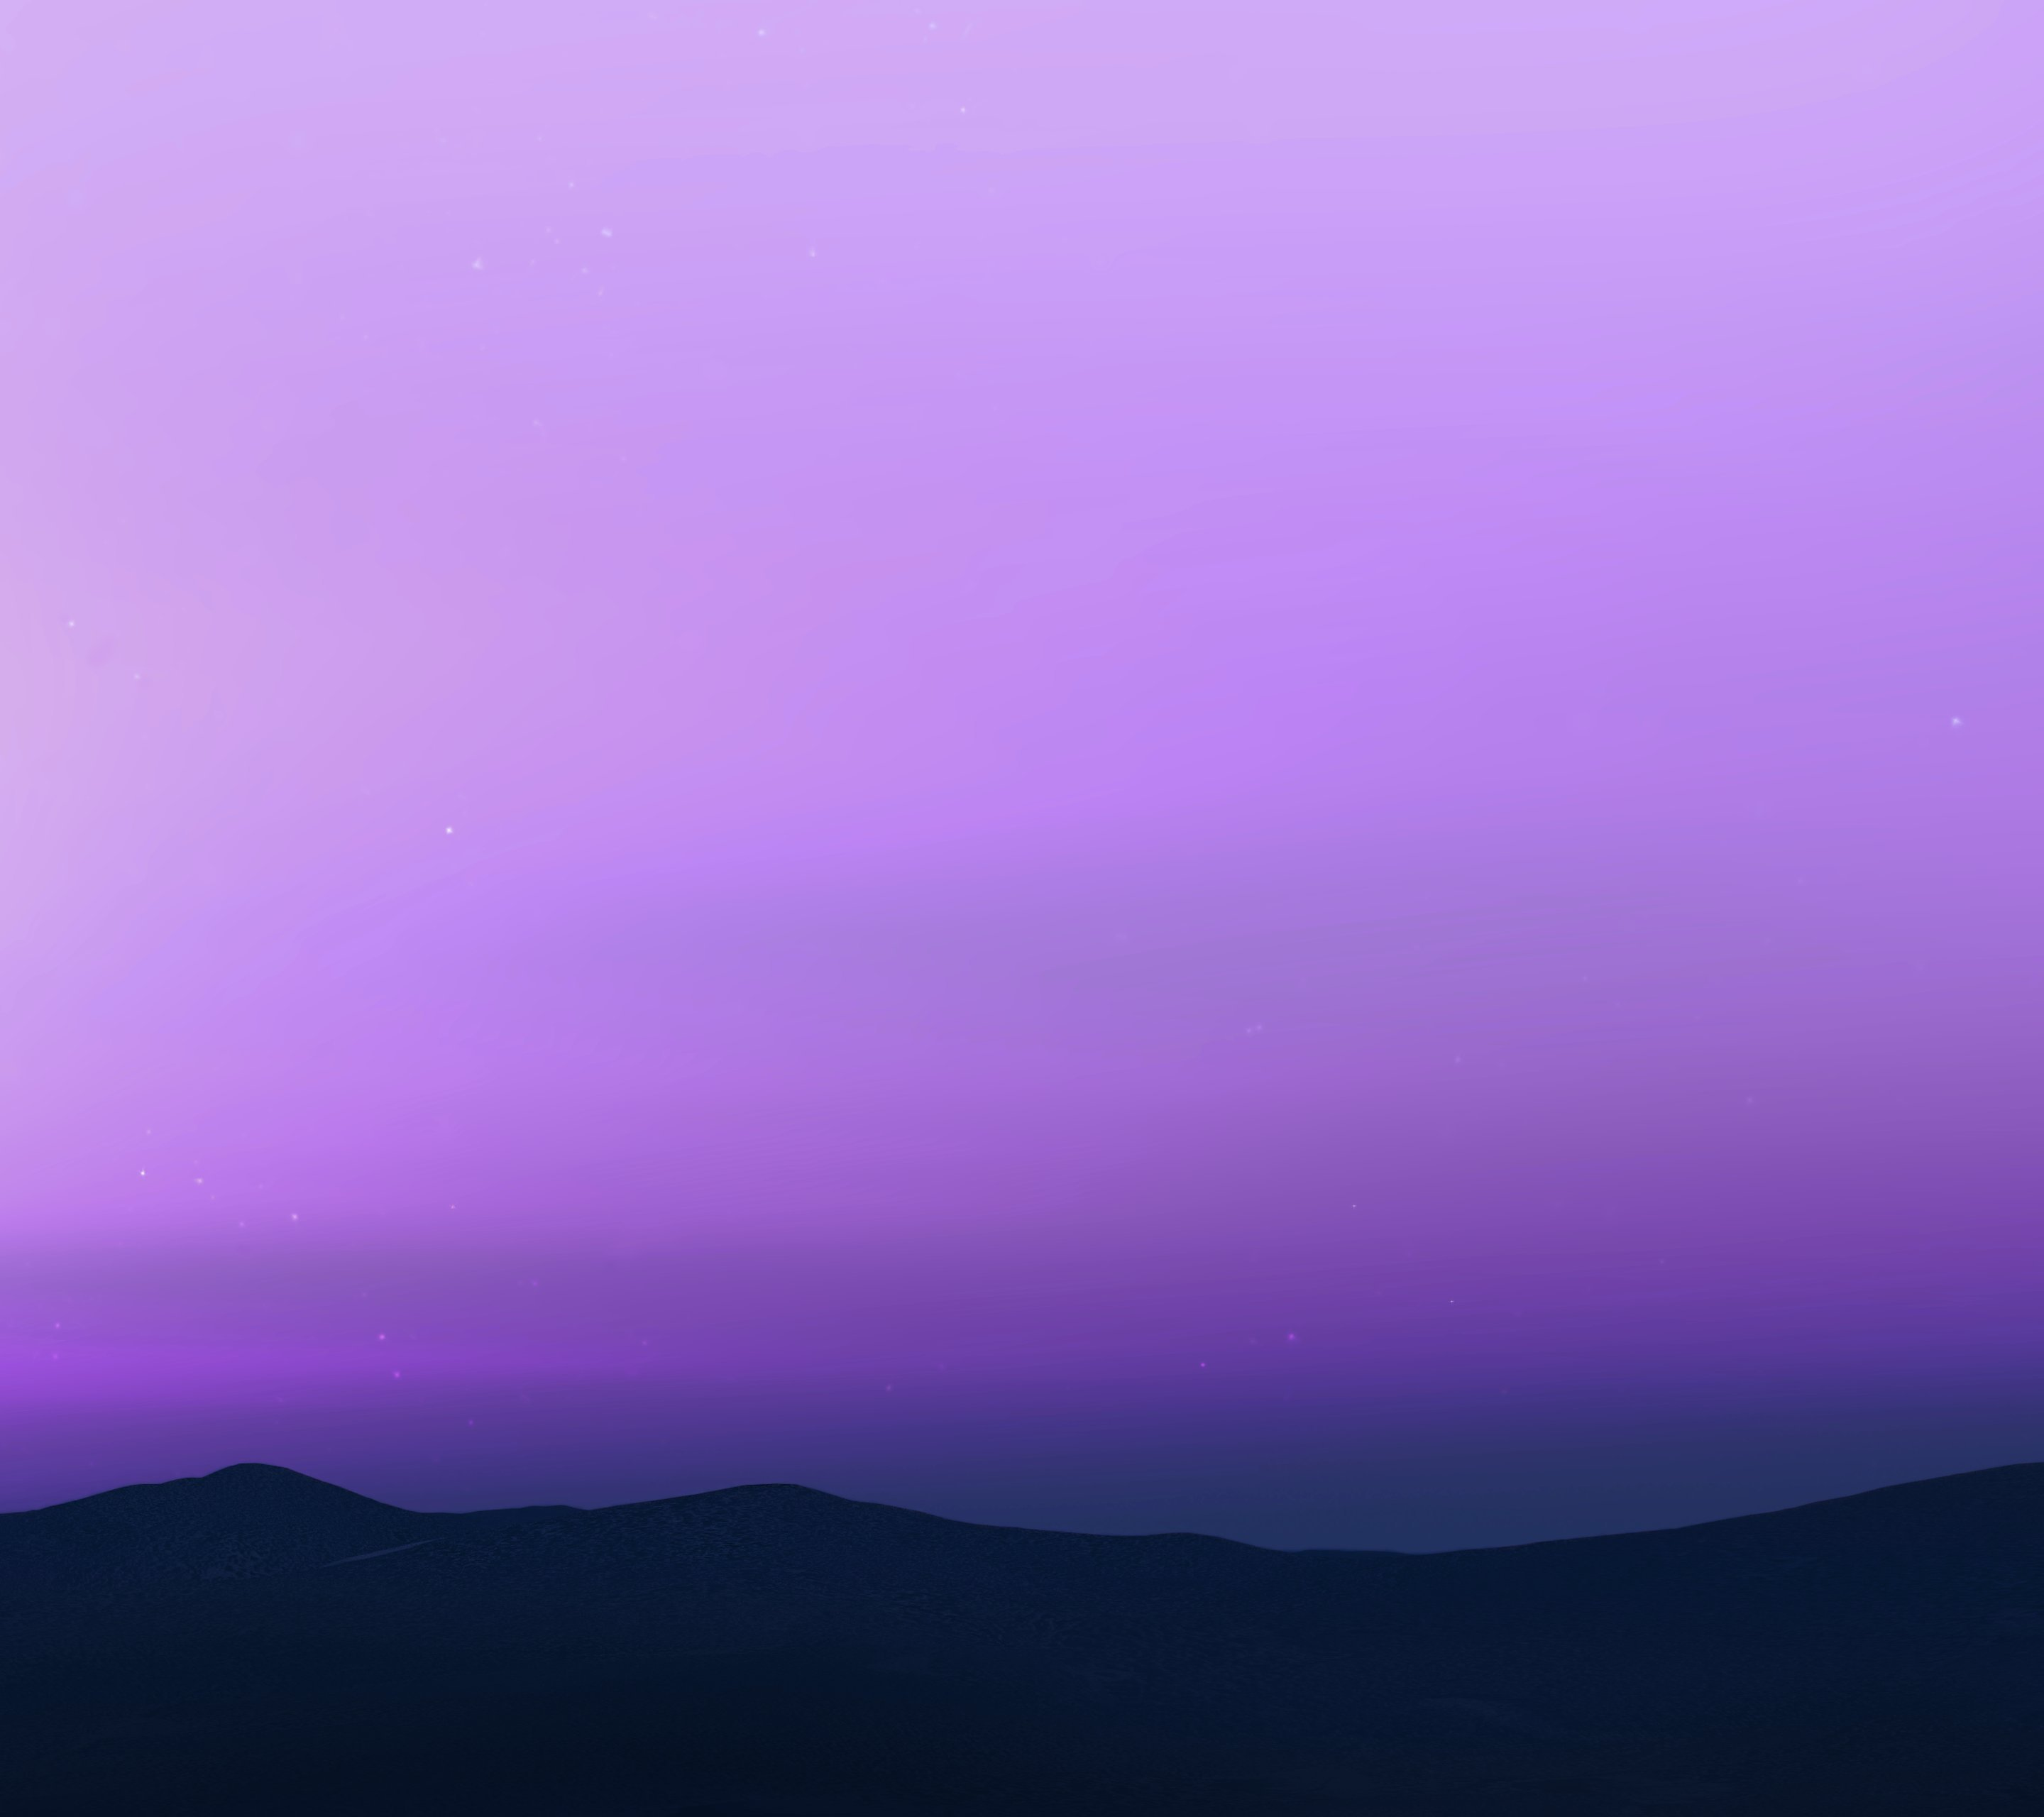 Android N Wallpaper - Purple Color